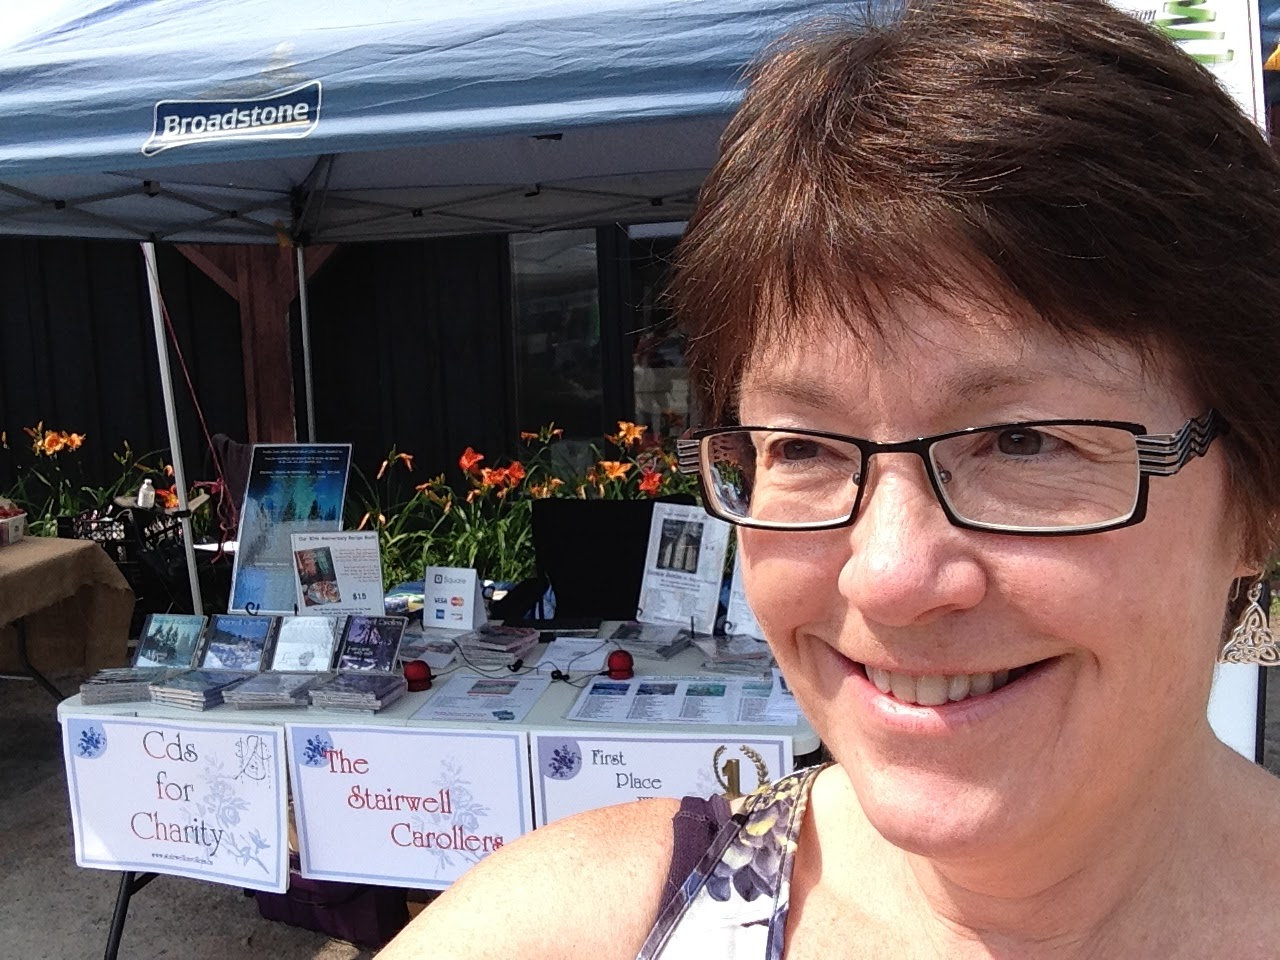 At the Manotick Farmers Market